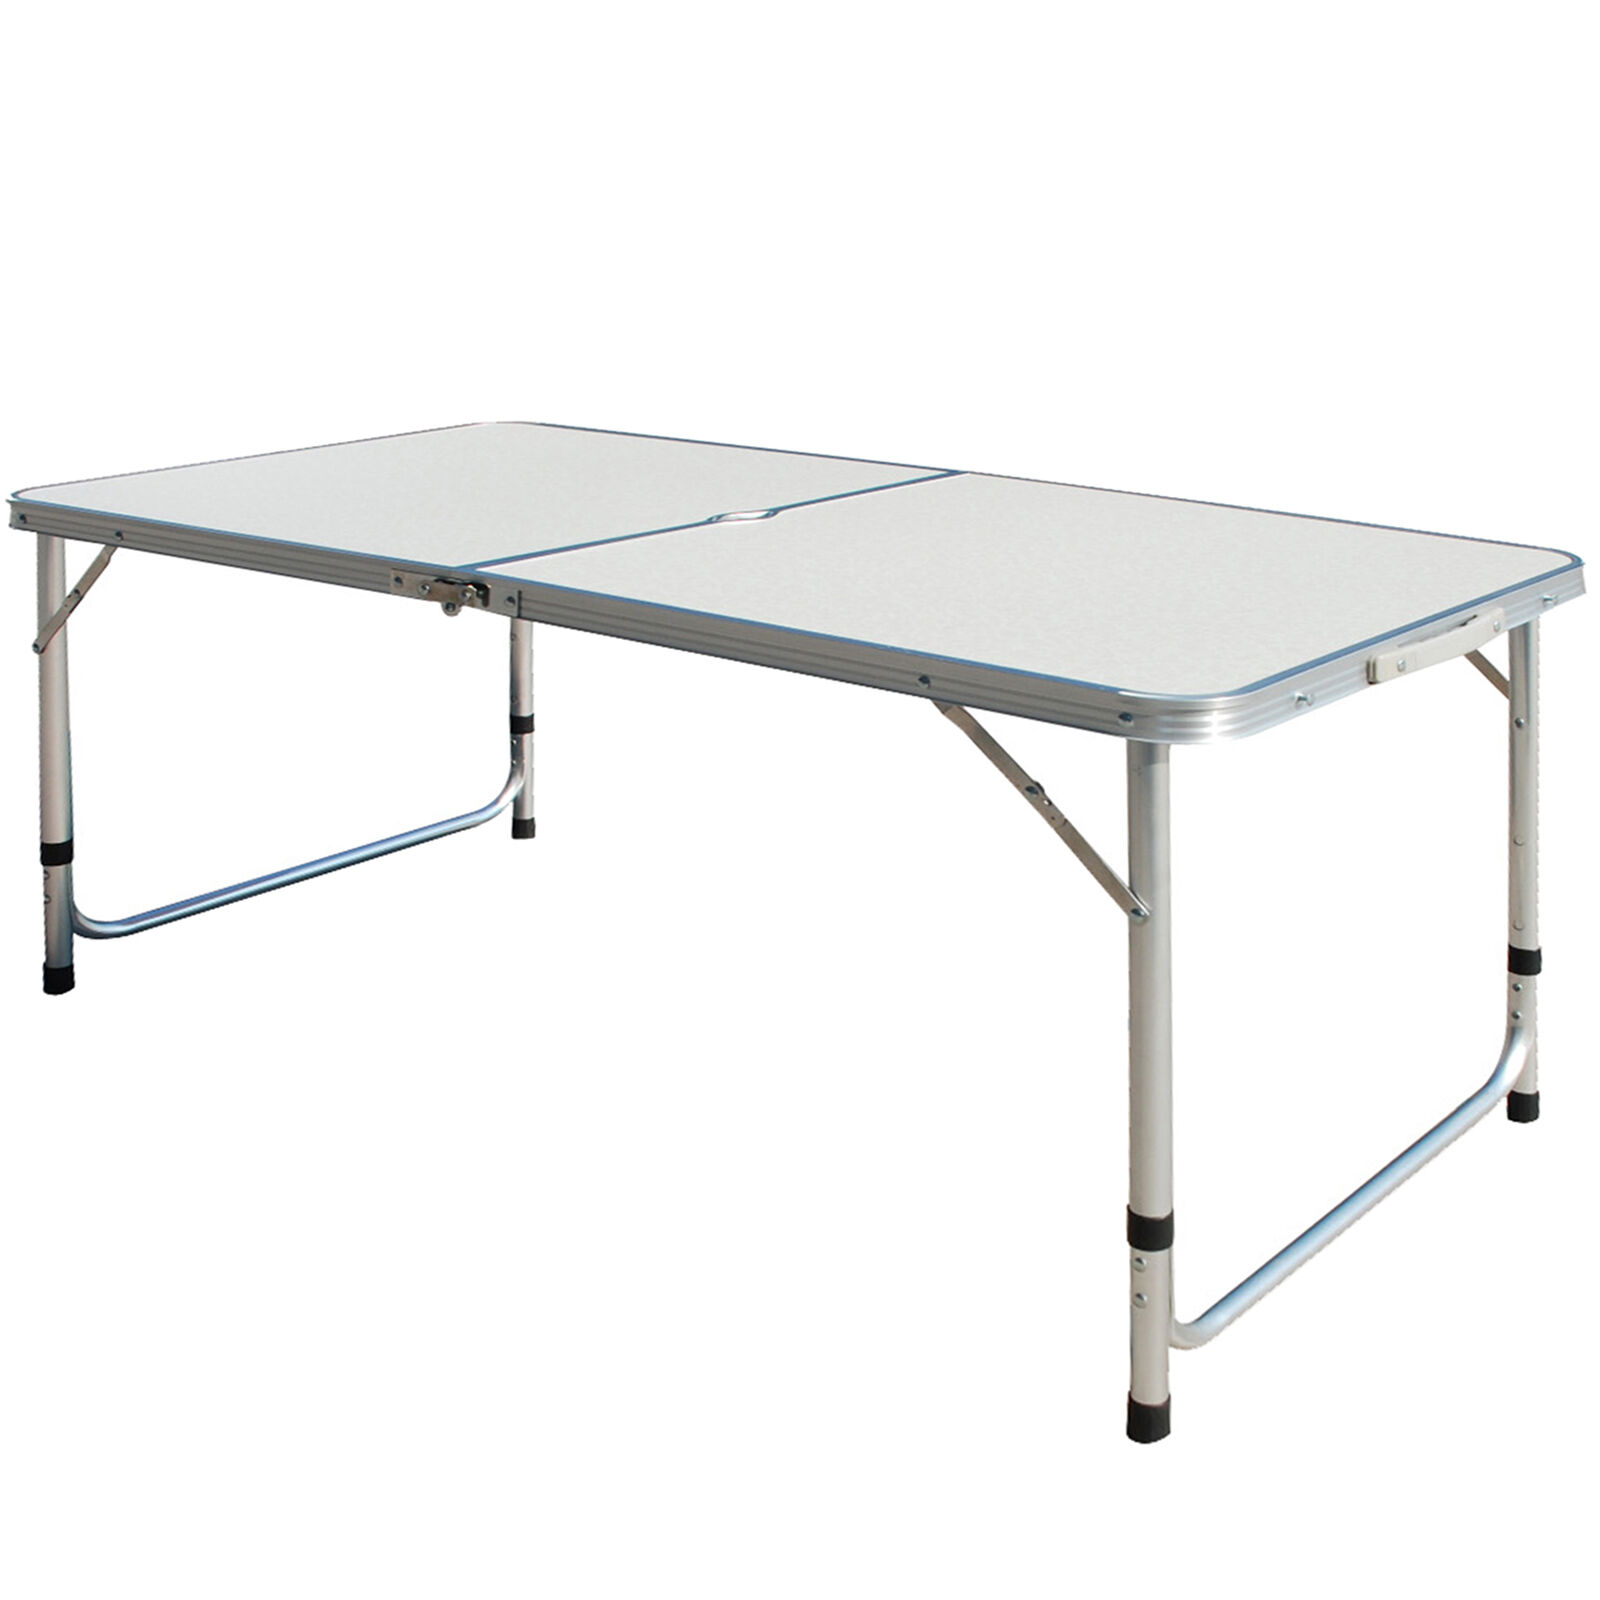 4ft 1 2m lightweight aluminum portable folding camping table picnic bbq outdoor ebay - Small lightweight folding table ...